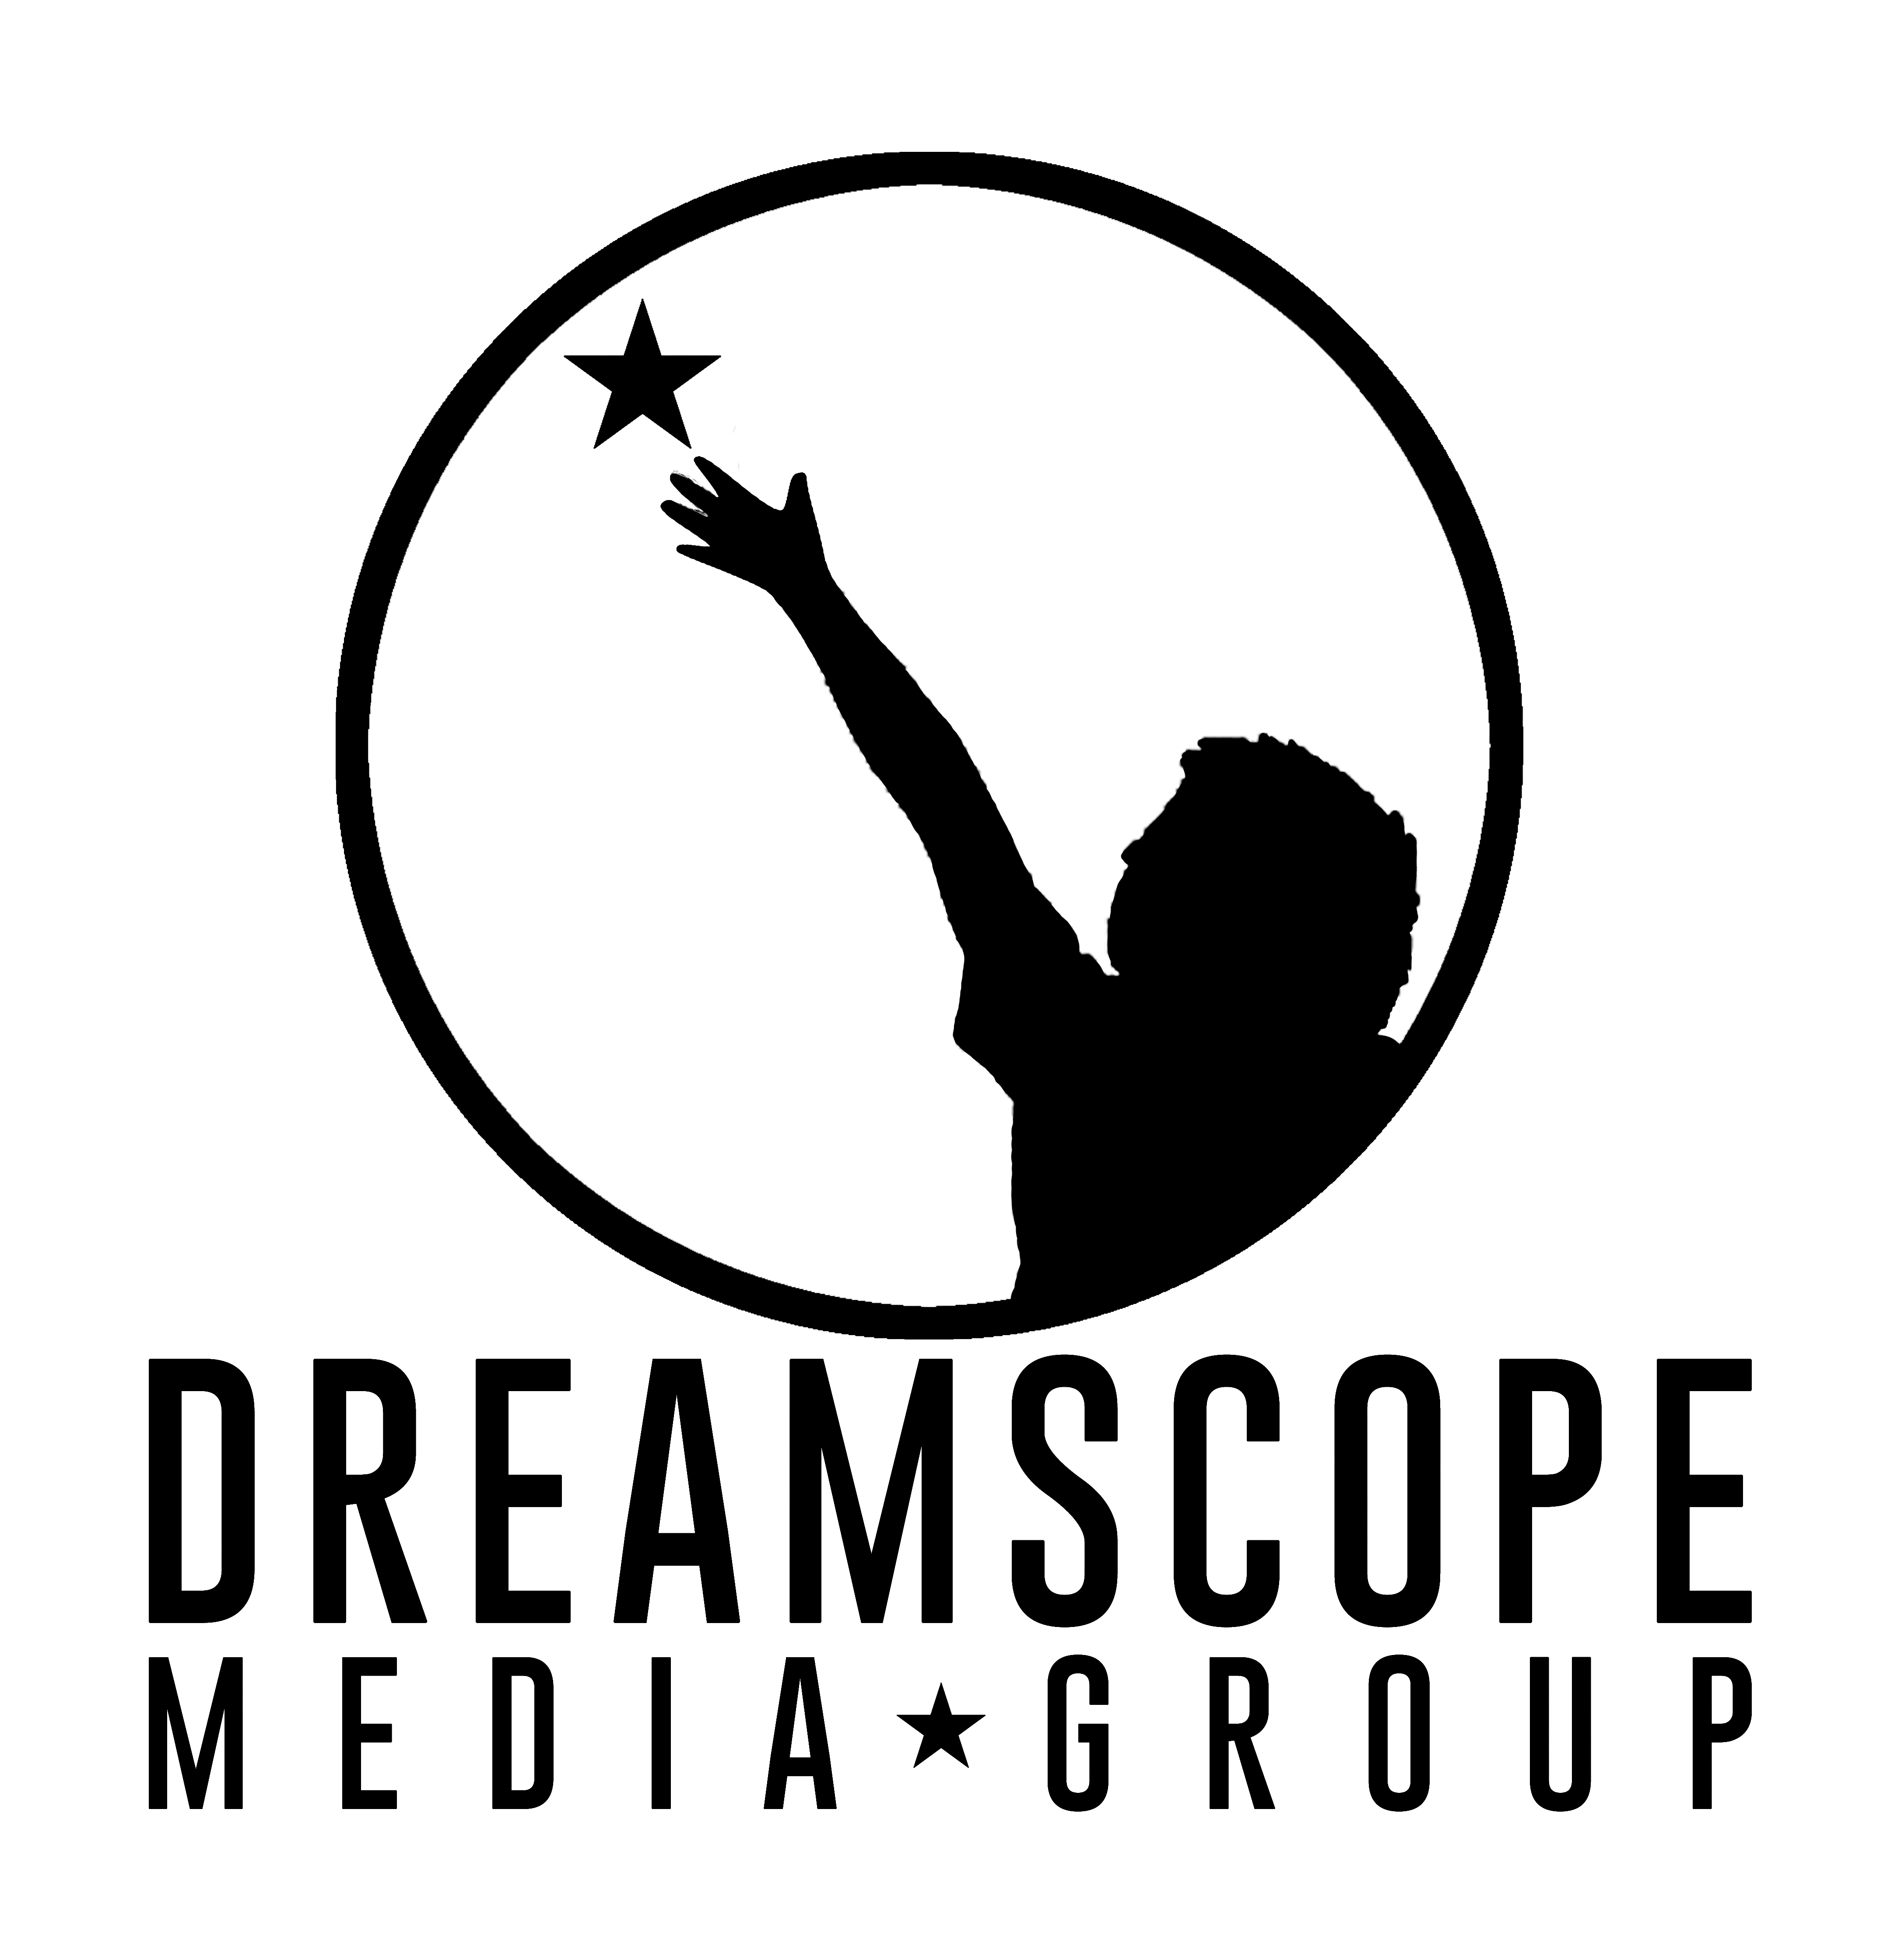 Official Dreamscope Media Group merch